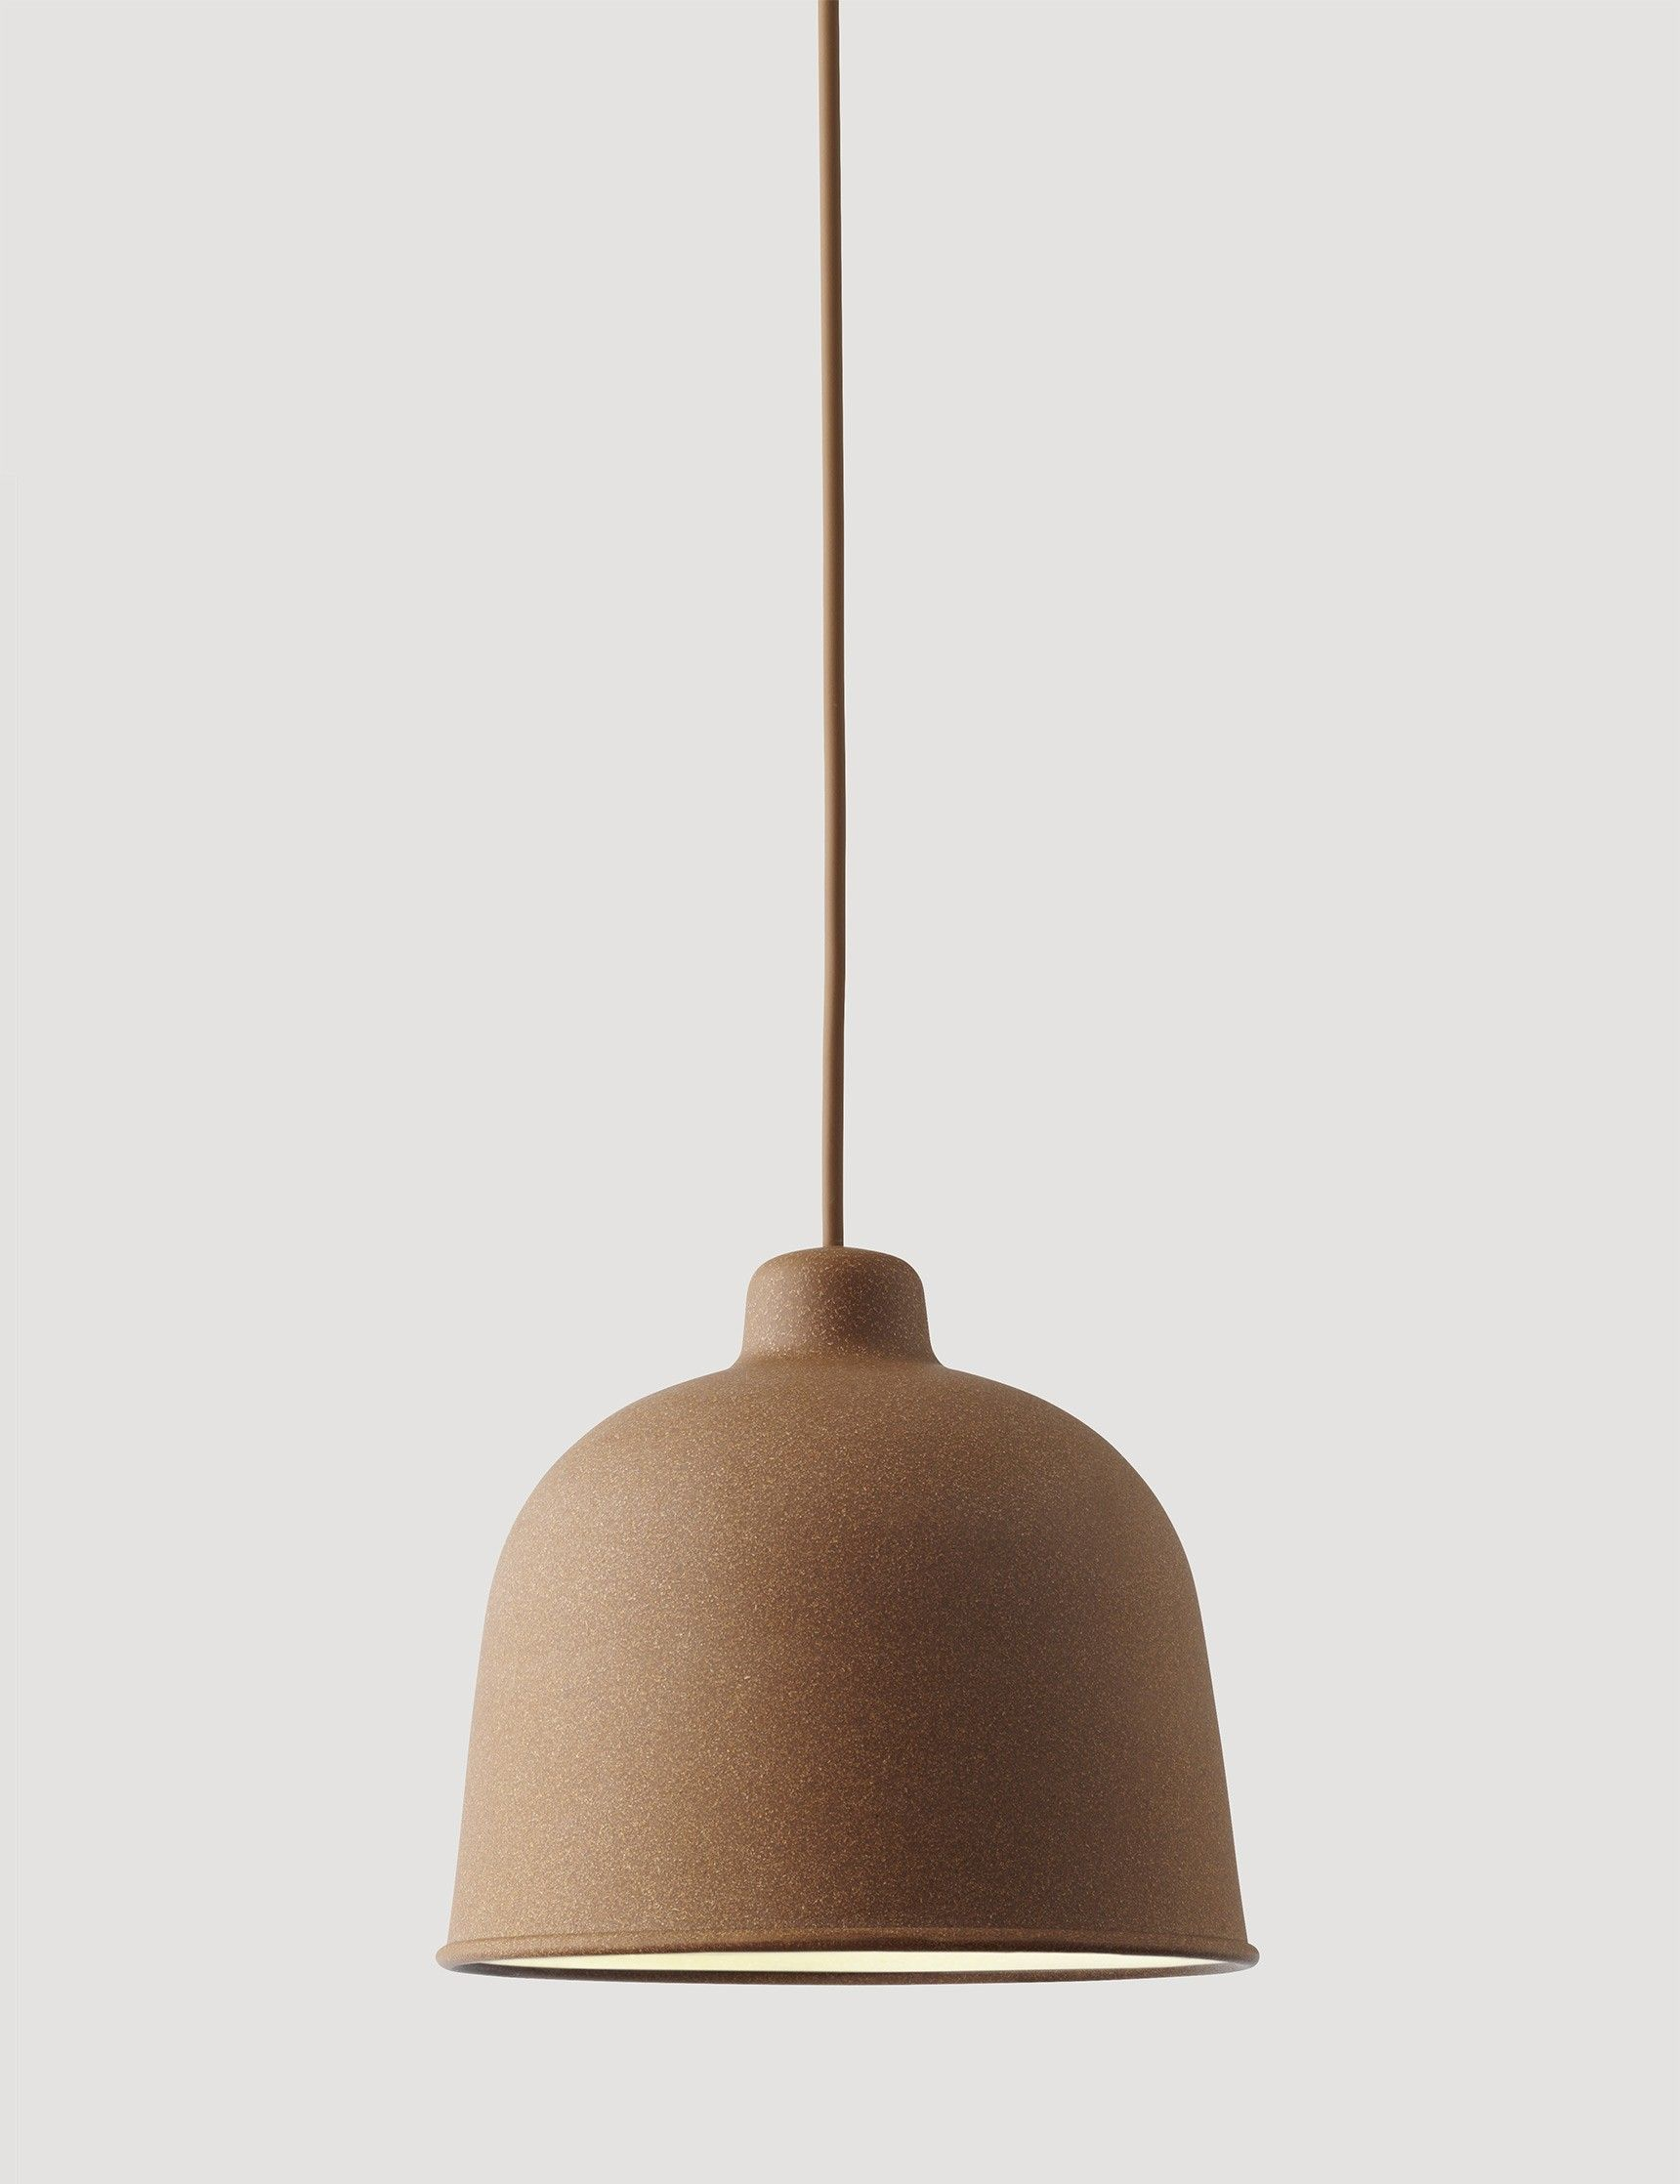 The Grain Lamp Brings A New Perspective To The Pendant Lamp Genre By Combining A Classic Minimalistic D Ceramic Pendant Light Pendant Lamp Modern Pendant Lamps